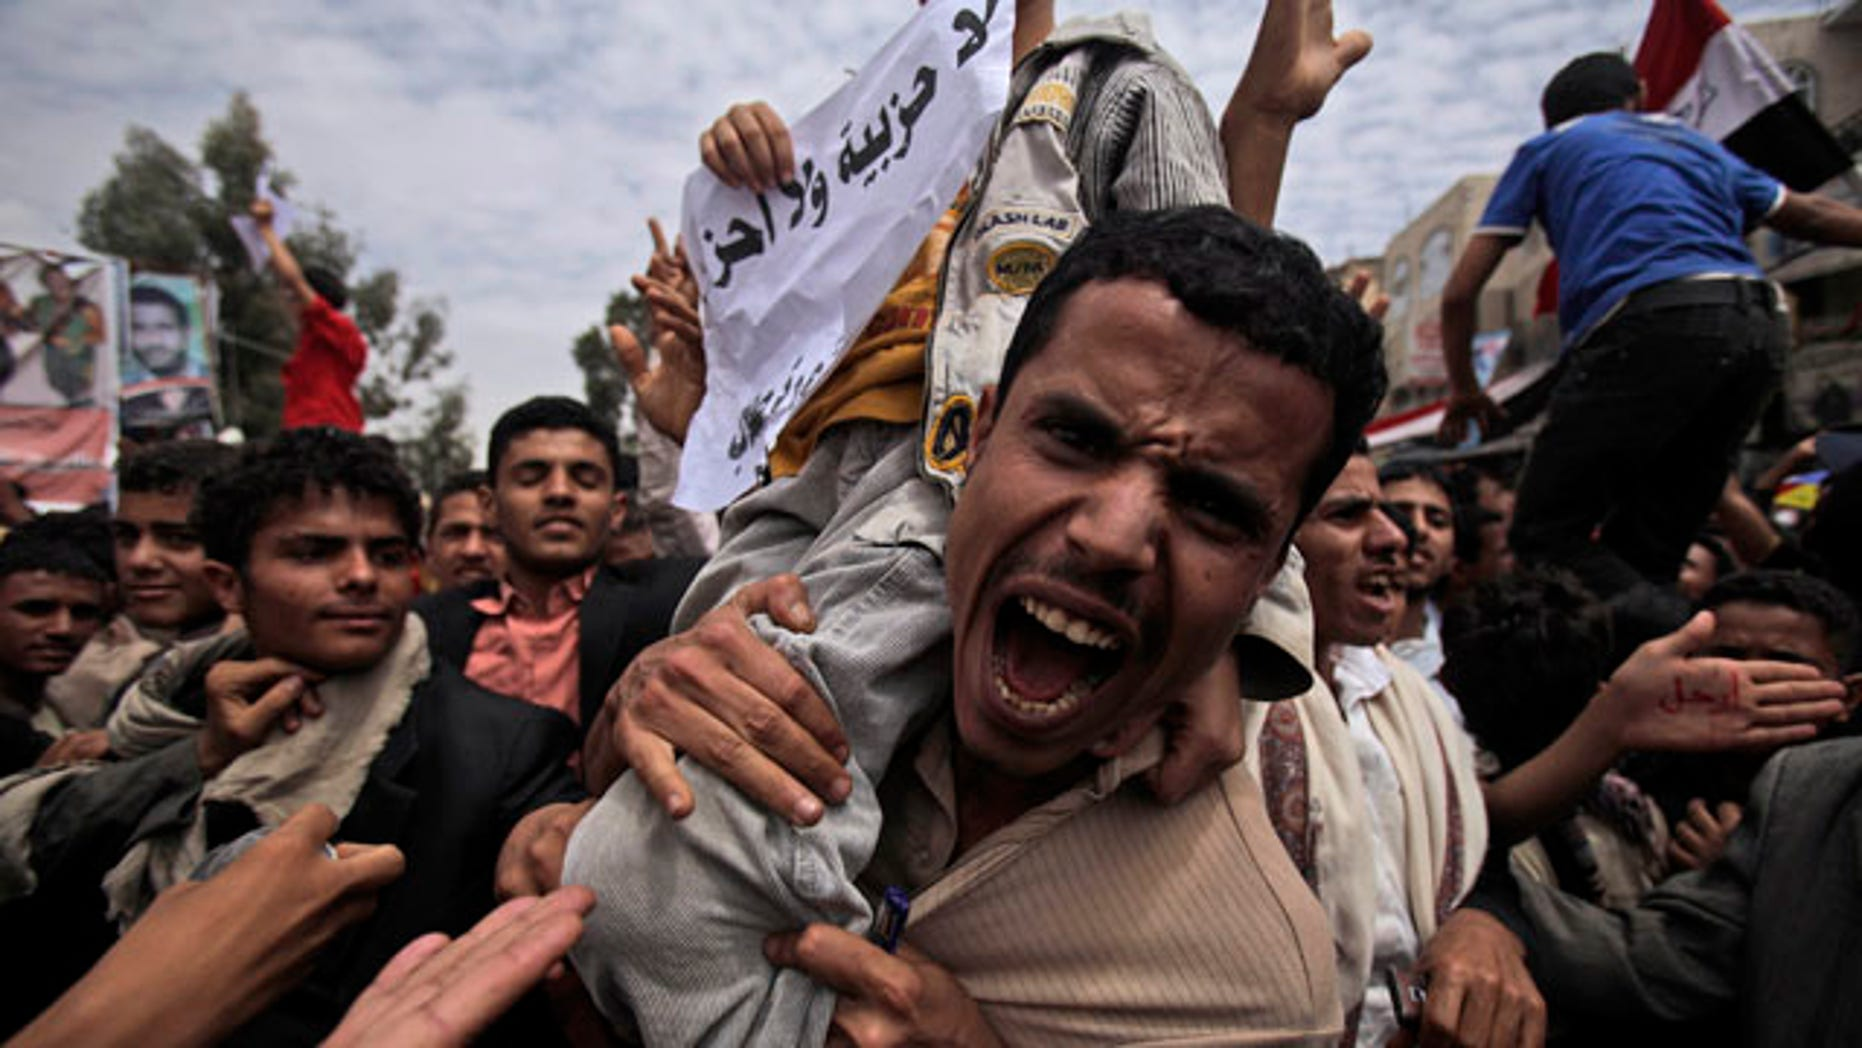 March 13, 2011: An anti-government protestor shouts during a demonstration demanding the resignation of Yemeni President Ali Abdullah Saleh, in Sanaa, Yemen.